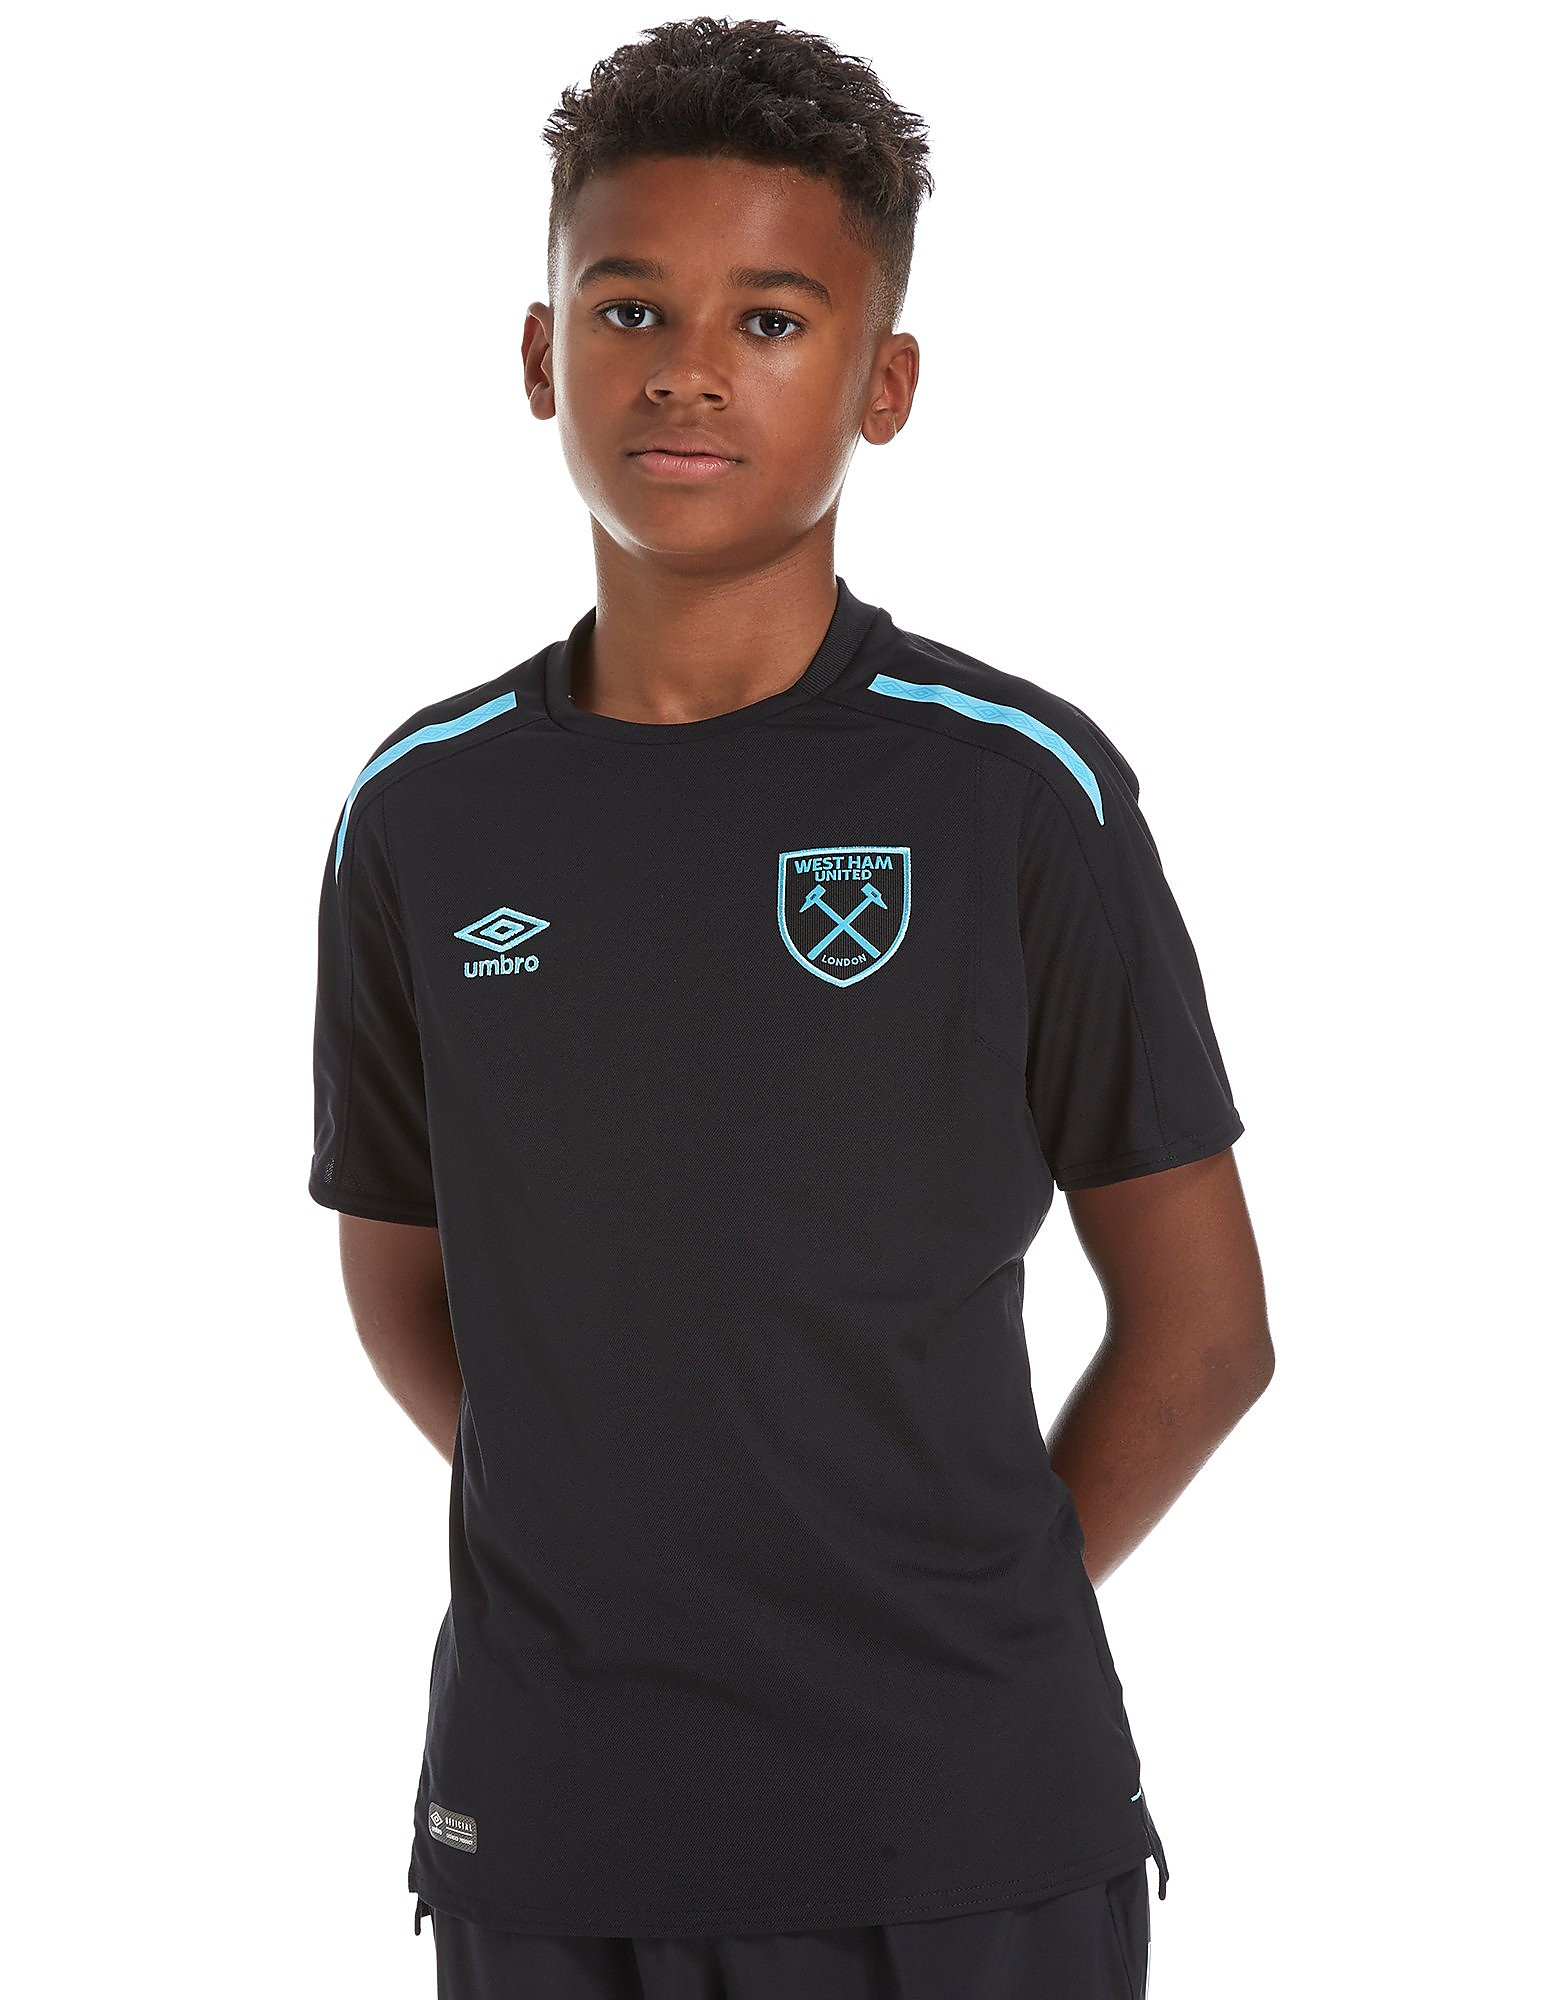 Umbro West Ham Utd 2017/18 Away Shirt Junior PRE ORDER